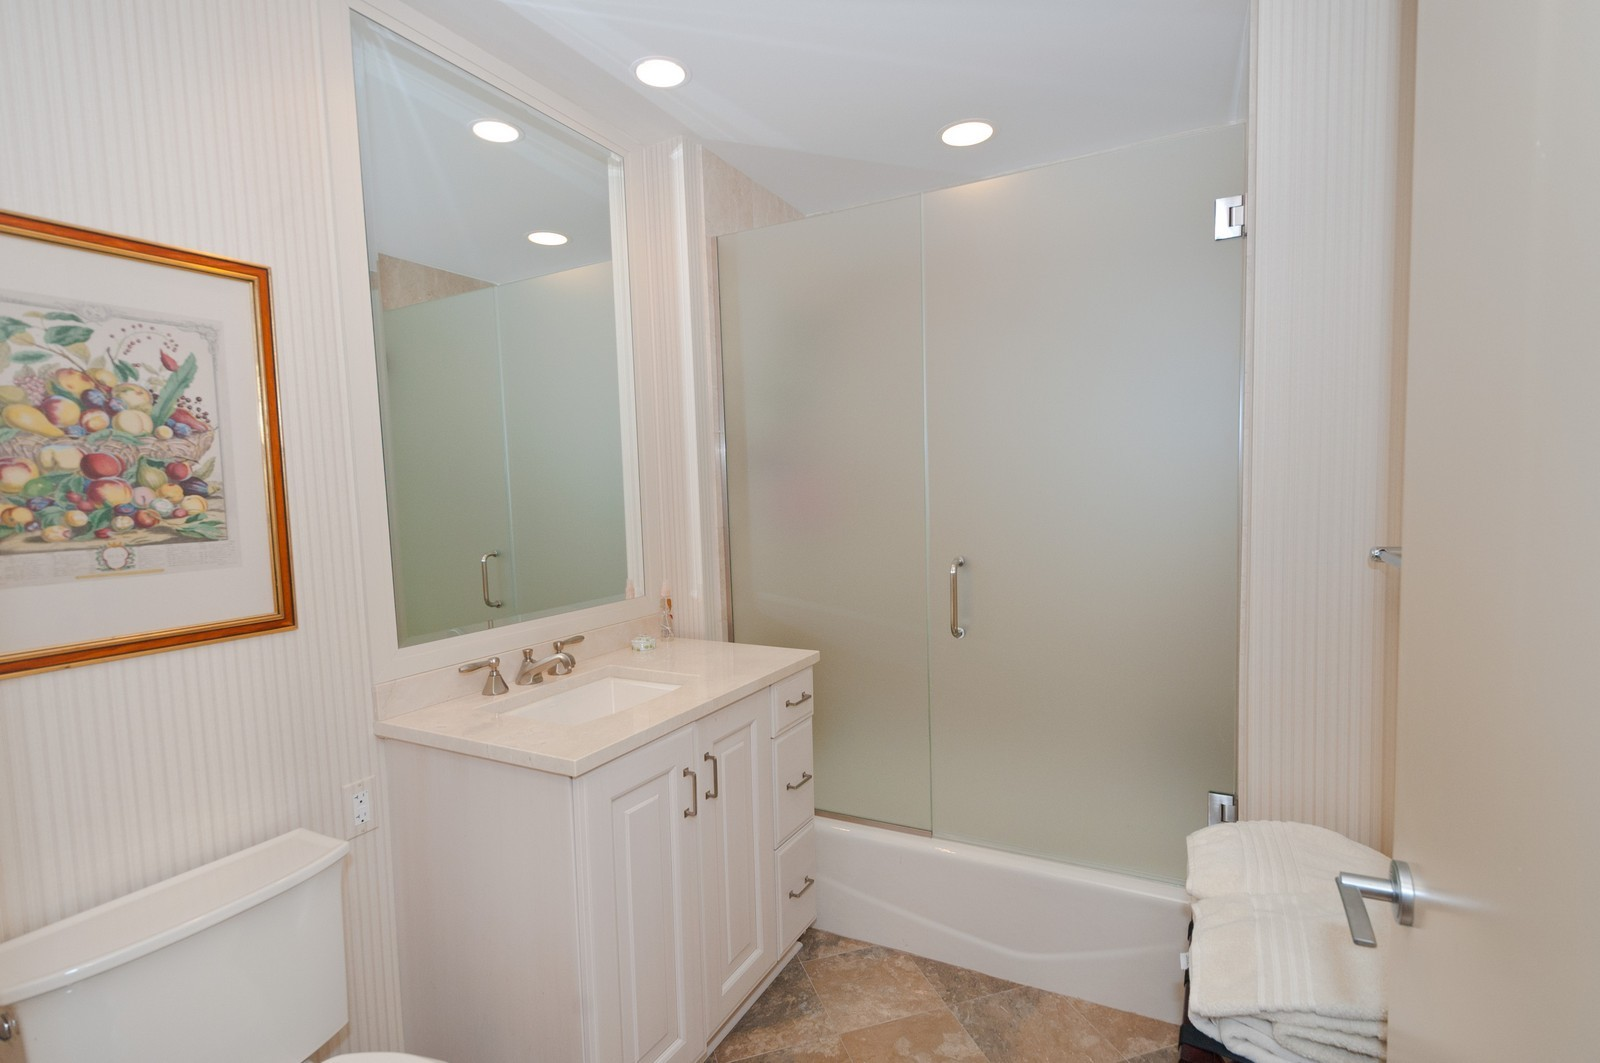 Real Estate Photography - 60 E. Monroe, 5901, Chicago, IL, 60603 - 3rd Bathroom